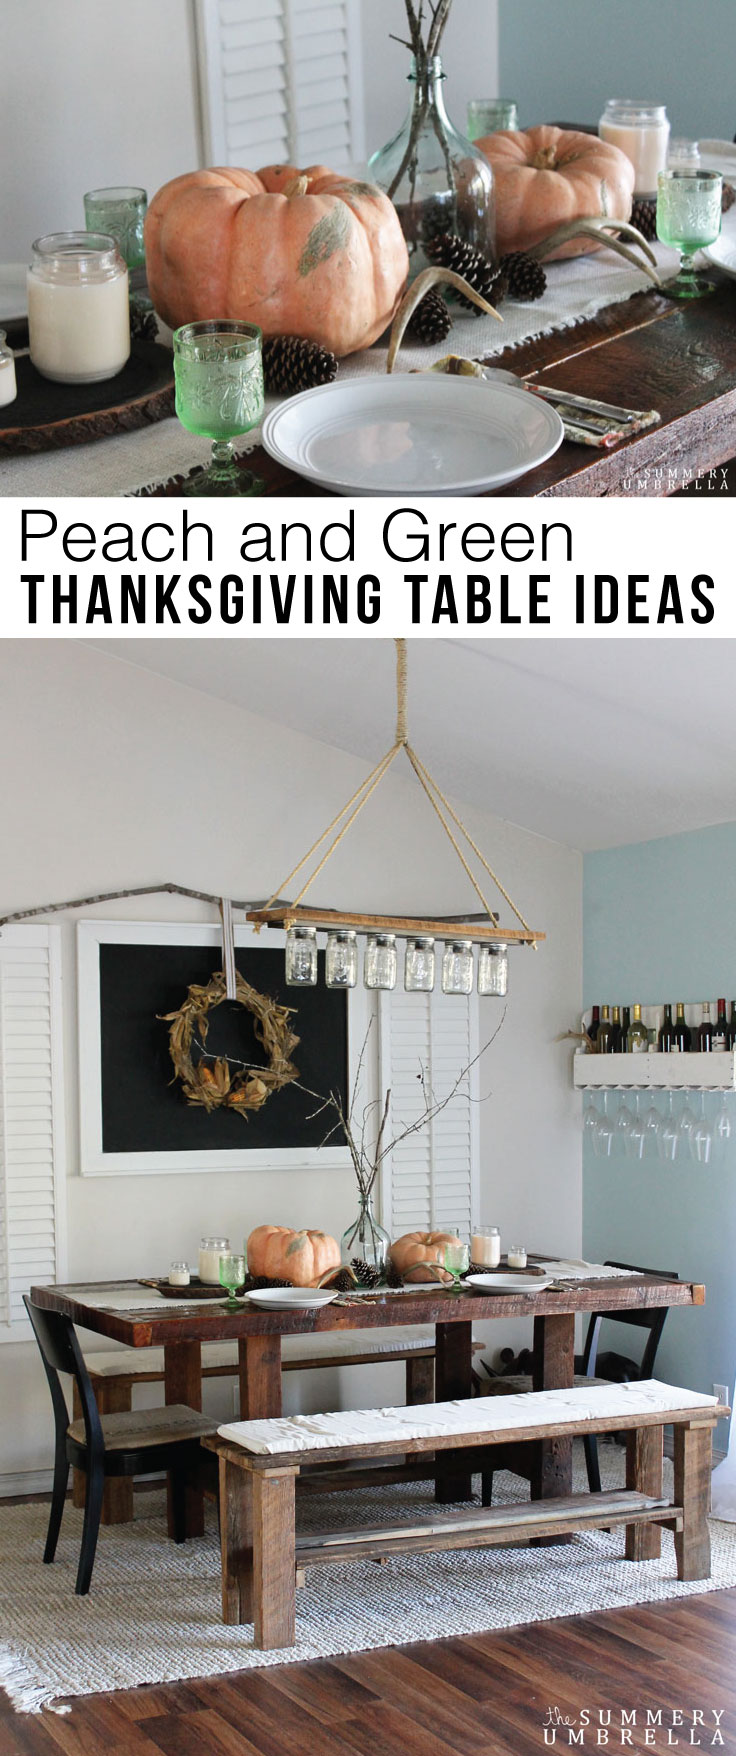 Looking for gorgeous (and super easy!) Peach and GreenThanksgiving Table Ideas? Then you will definitely WANT to check out this lovely array now!